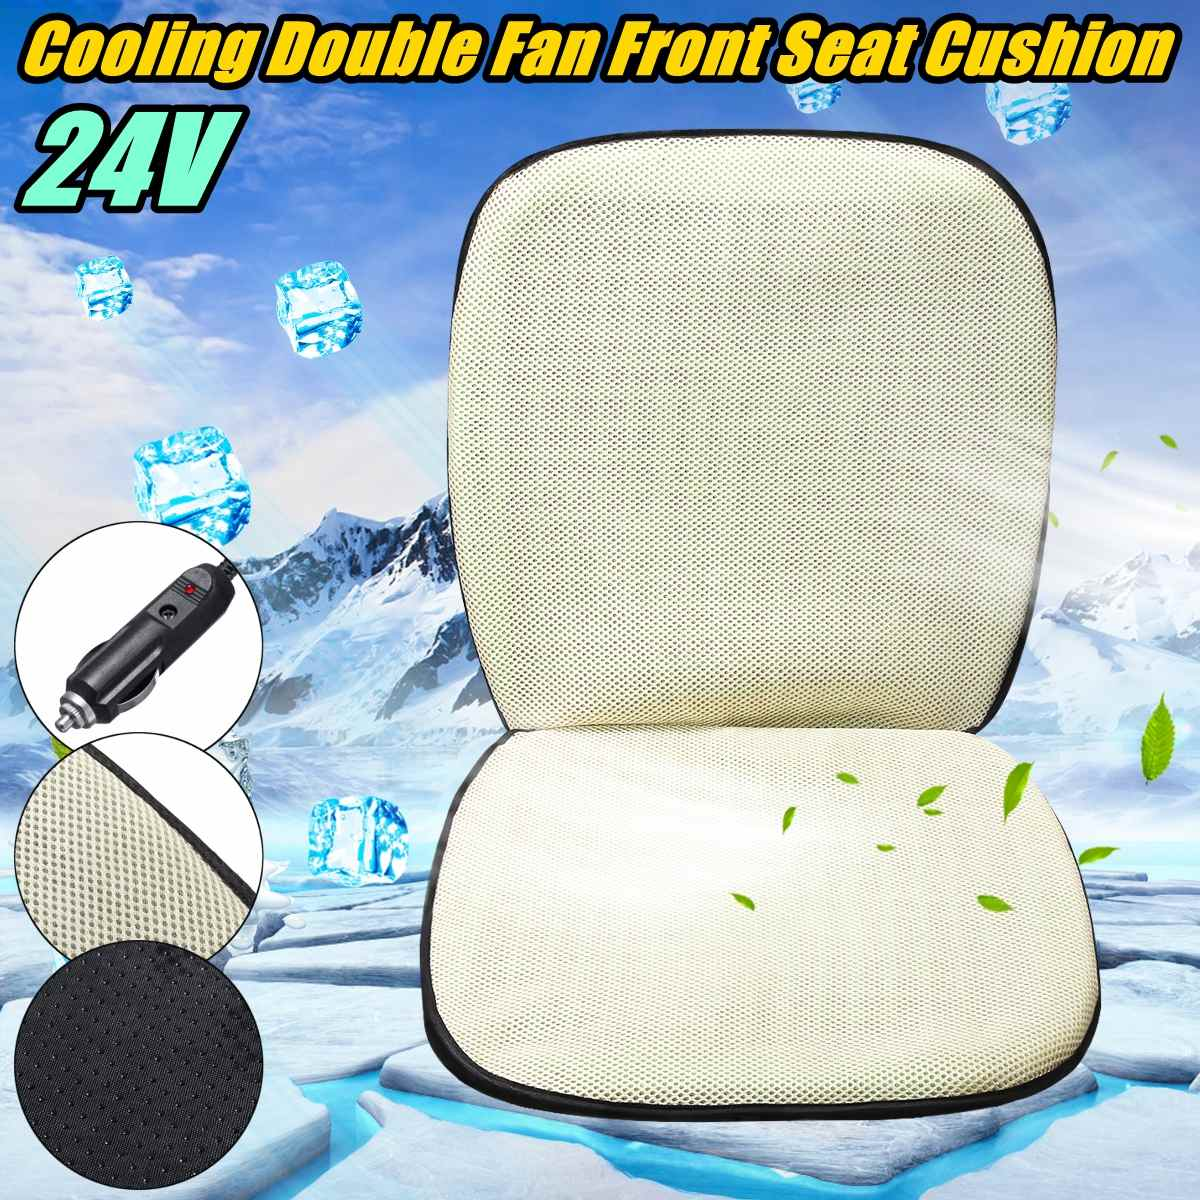 3D Cooling Fan Front Car Seat Cushion Double Fans Cooling Seat Cover Summer Air Cooler Chair Pad Car Ventilation Cushion 12V/24